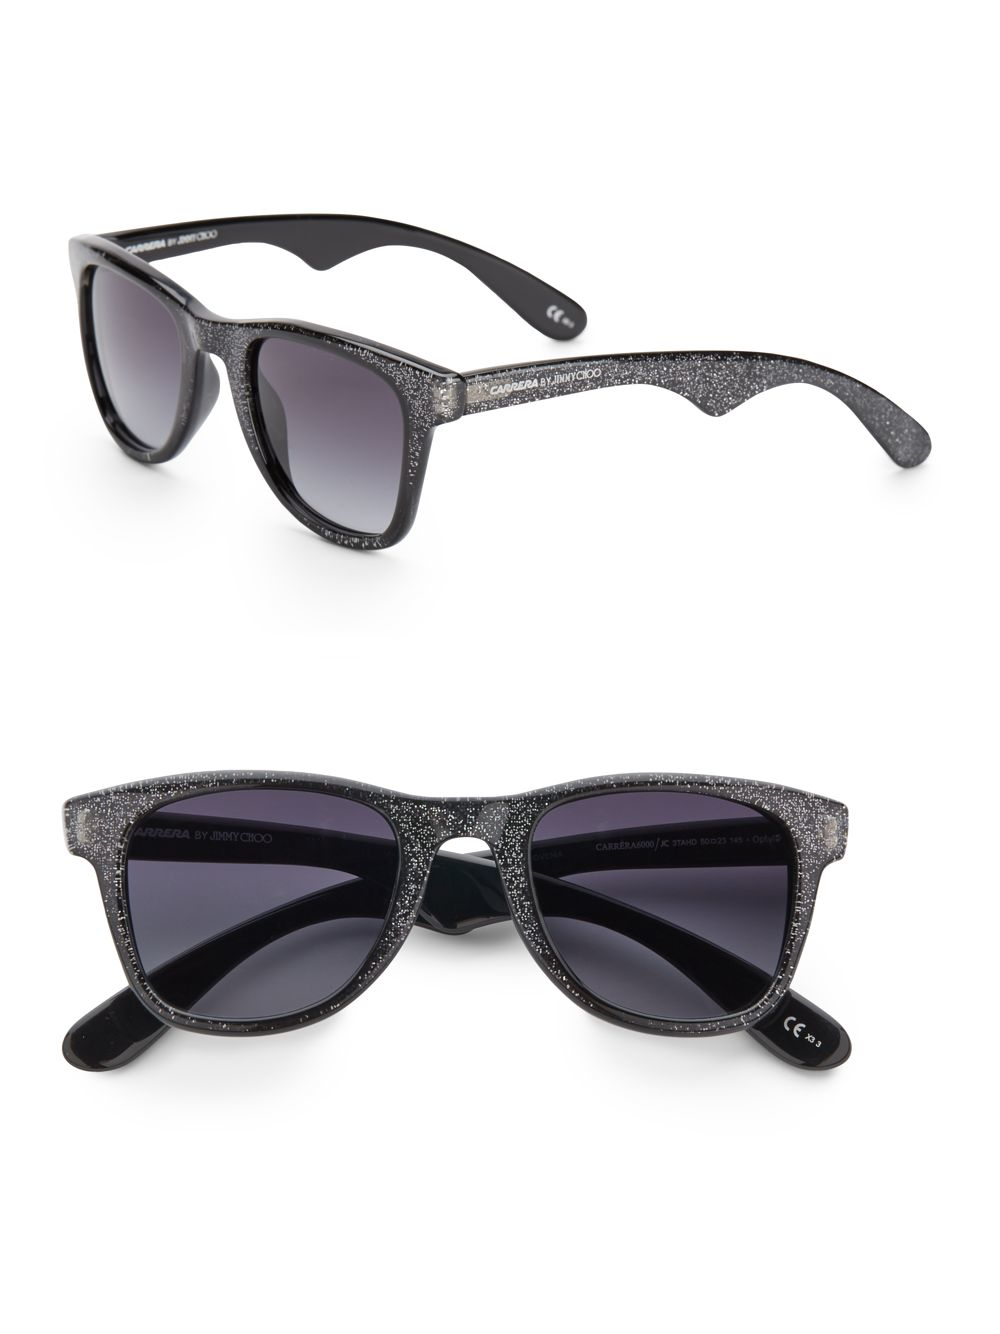 4a5344be2dad2 Lyst - Jimmy Choo 50mm Glitter Wayfarer Sunglasses in Gray